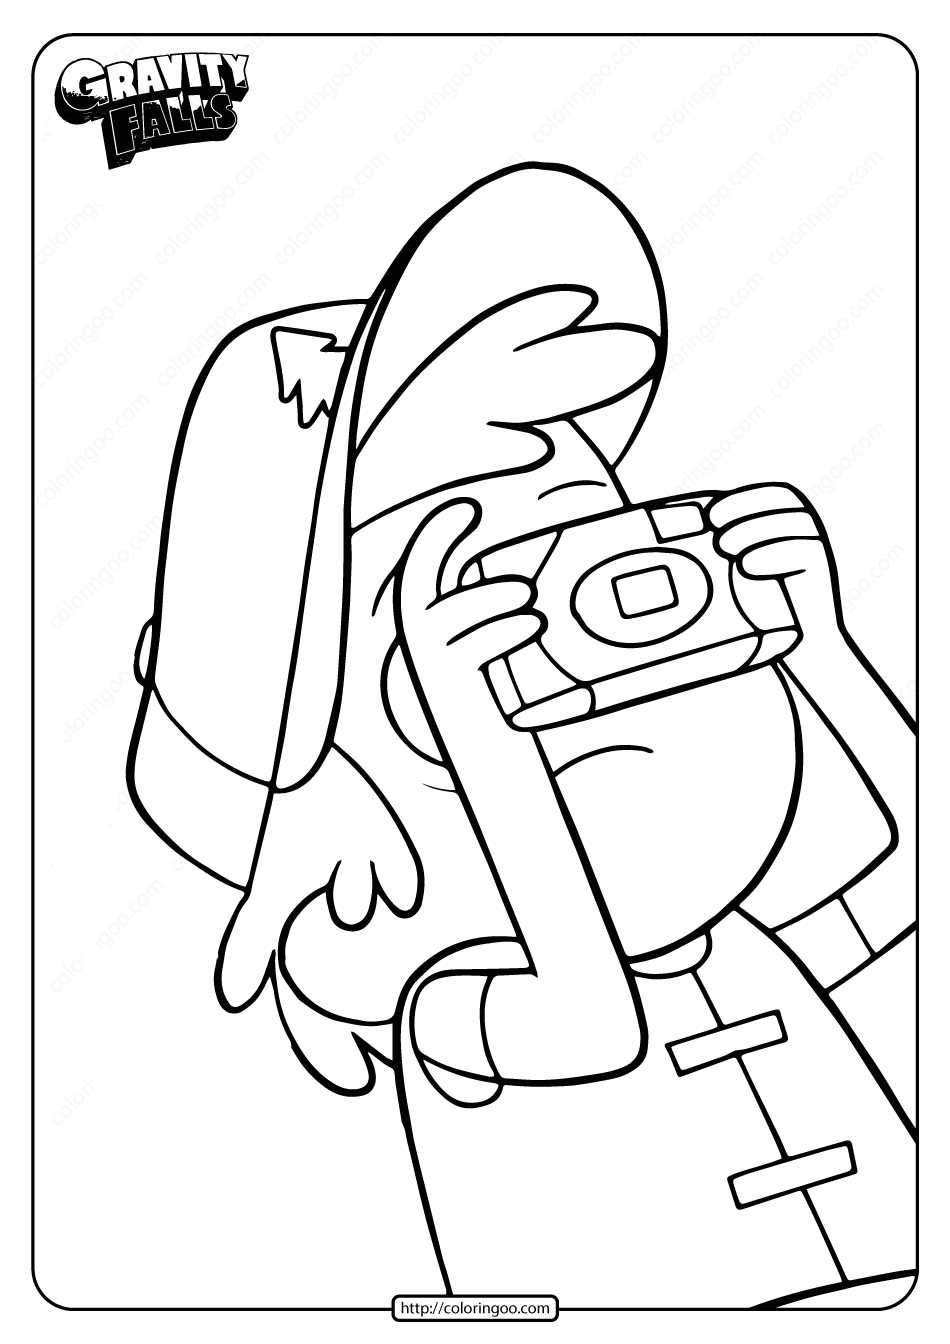 Free Printable Gravity Falls Dipper Coloring Page